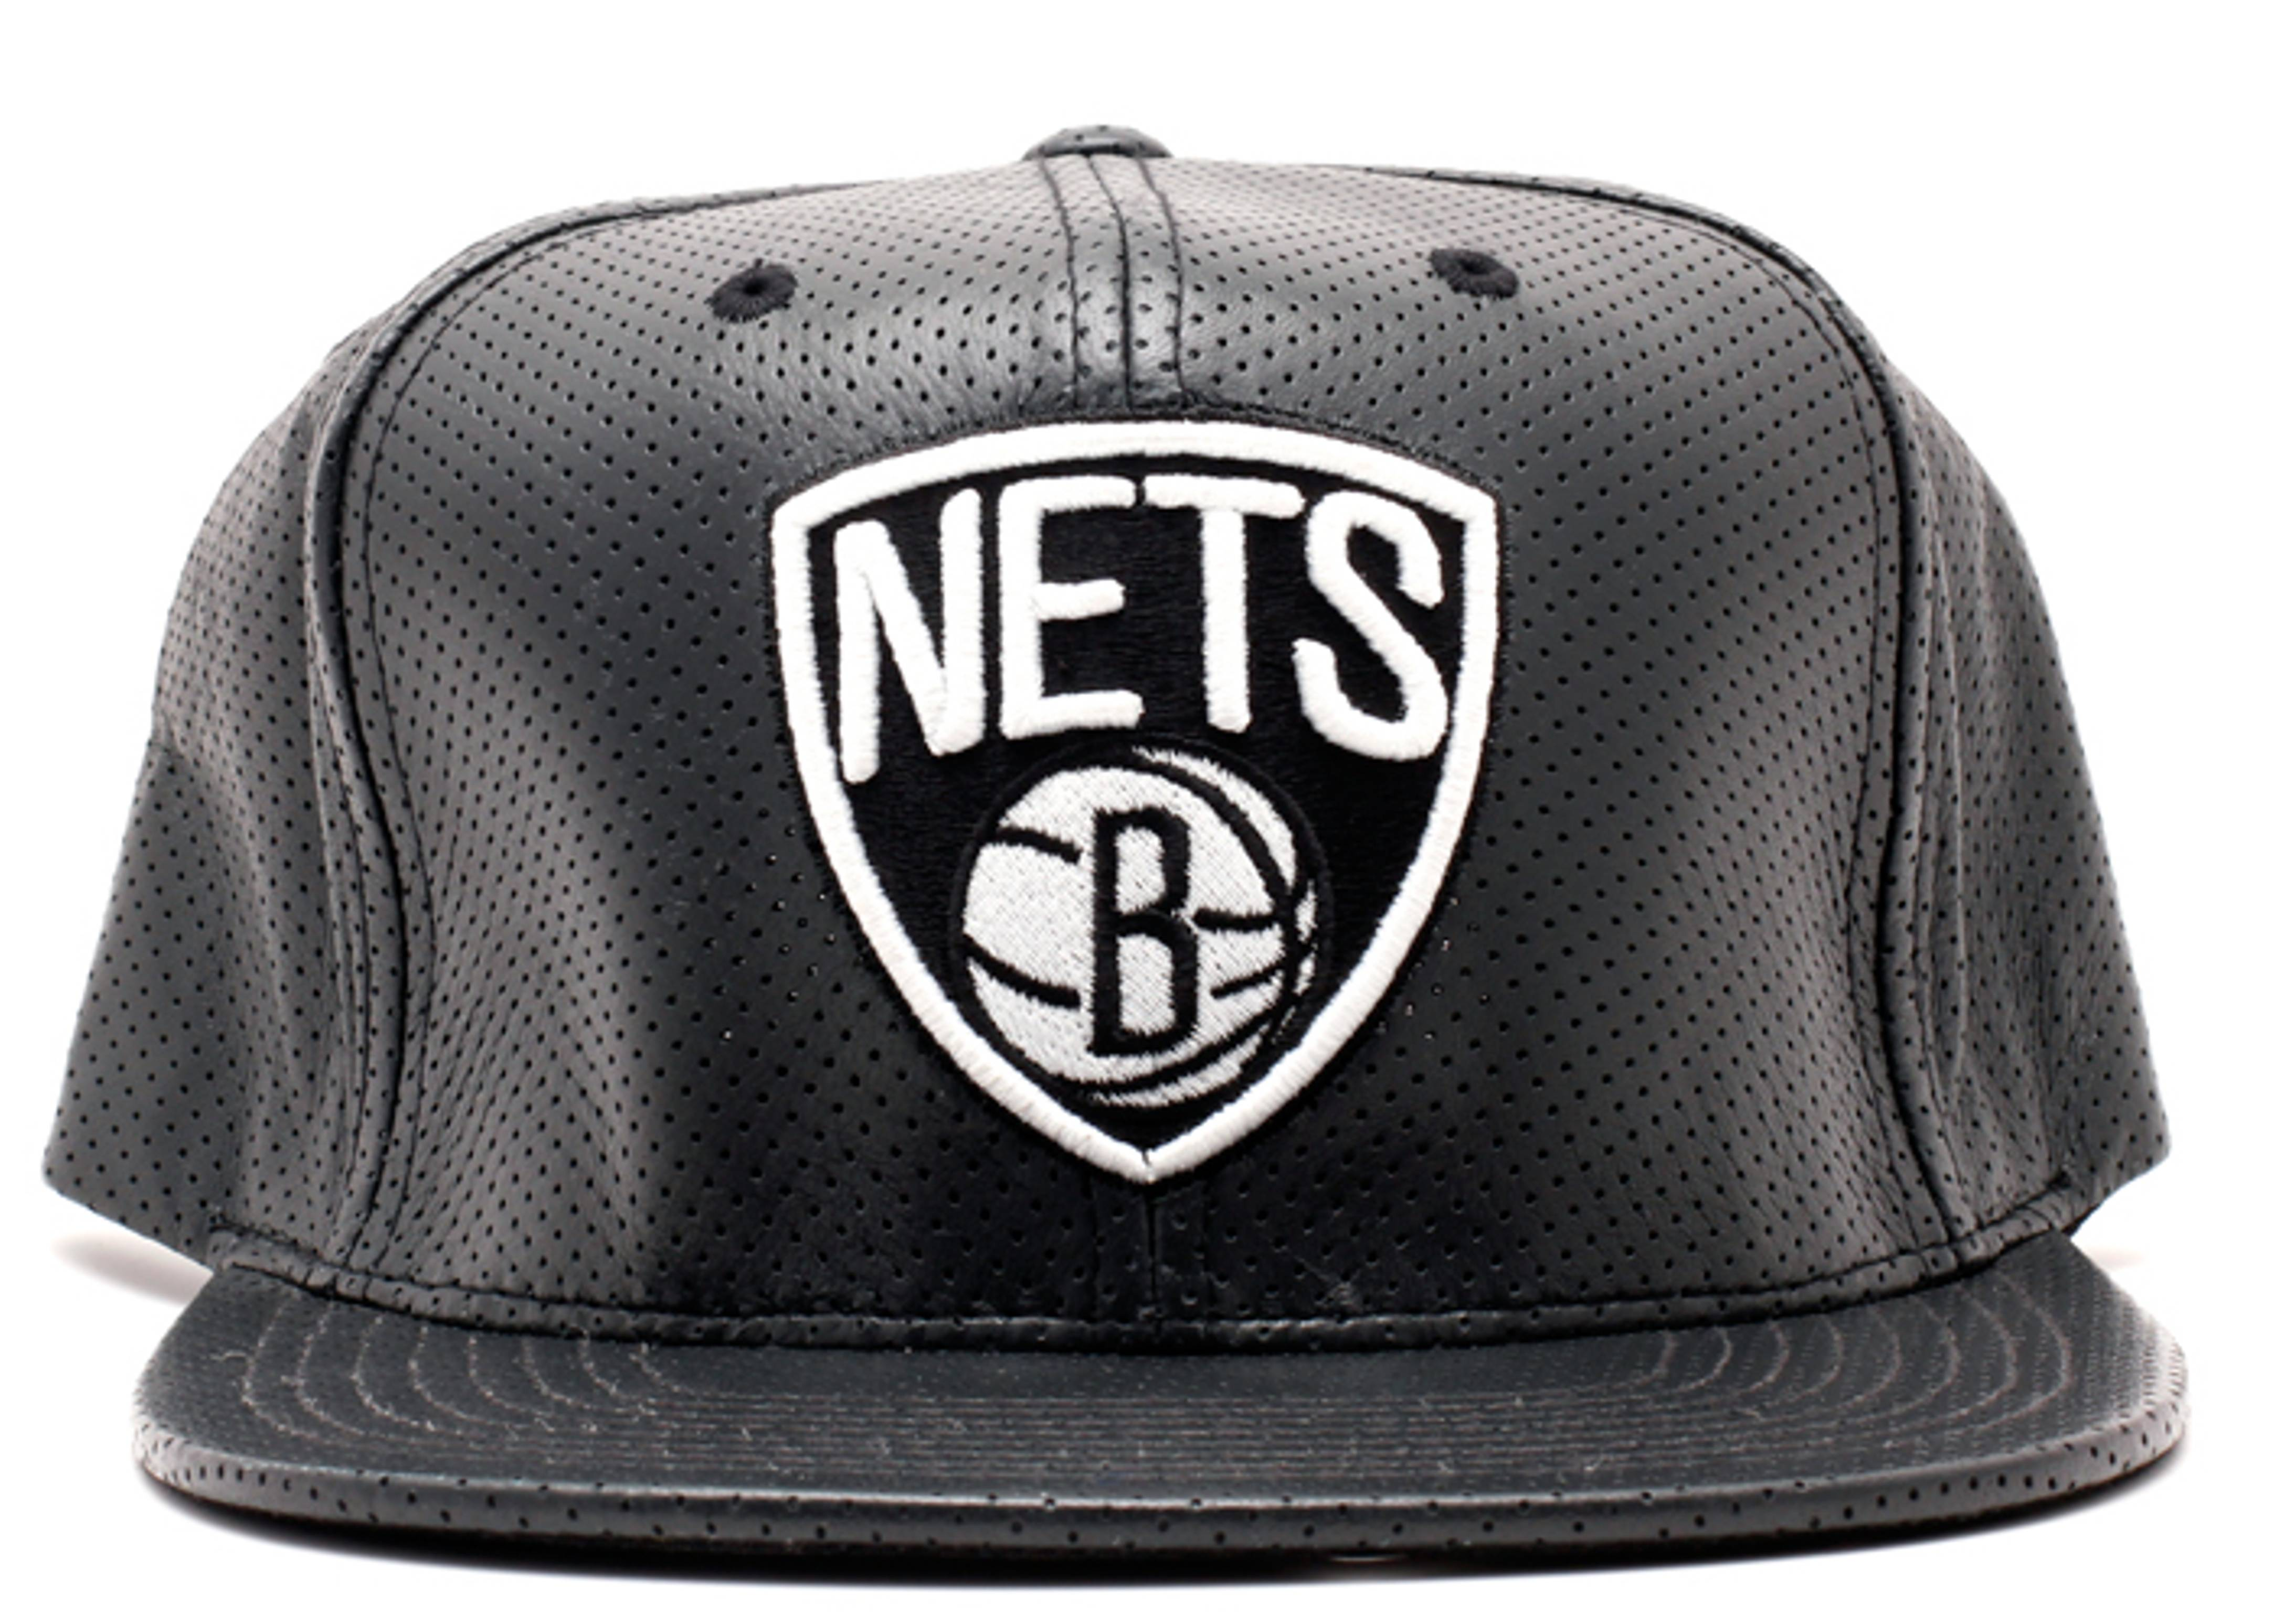 brooklyn nets perforated leather snap-back